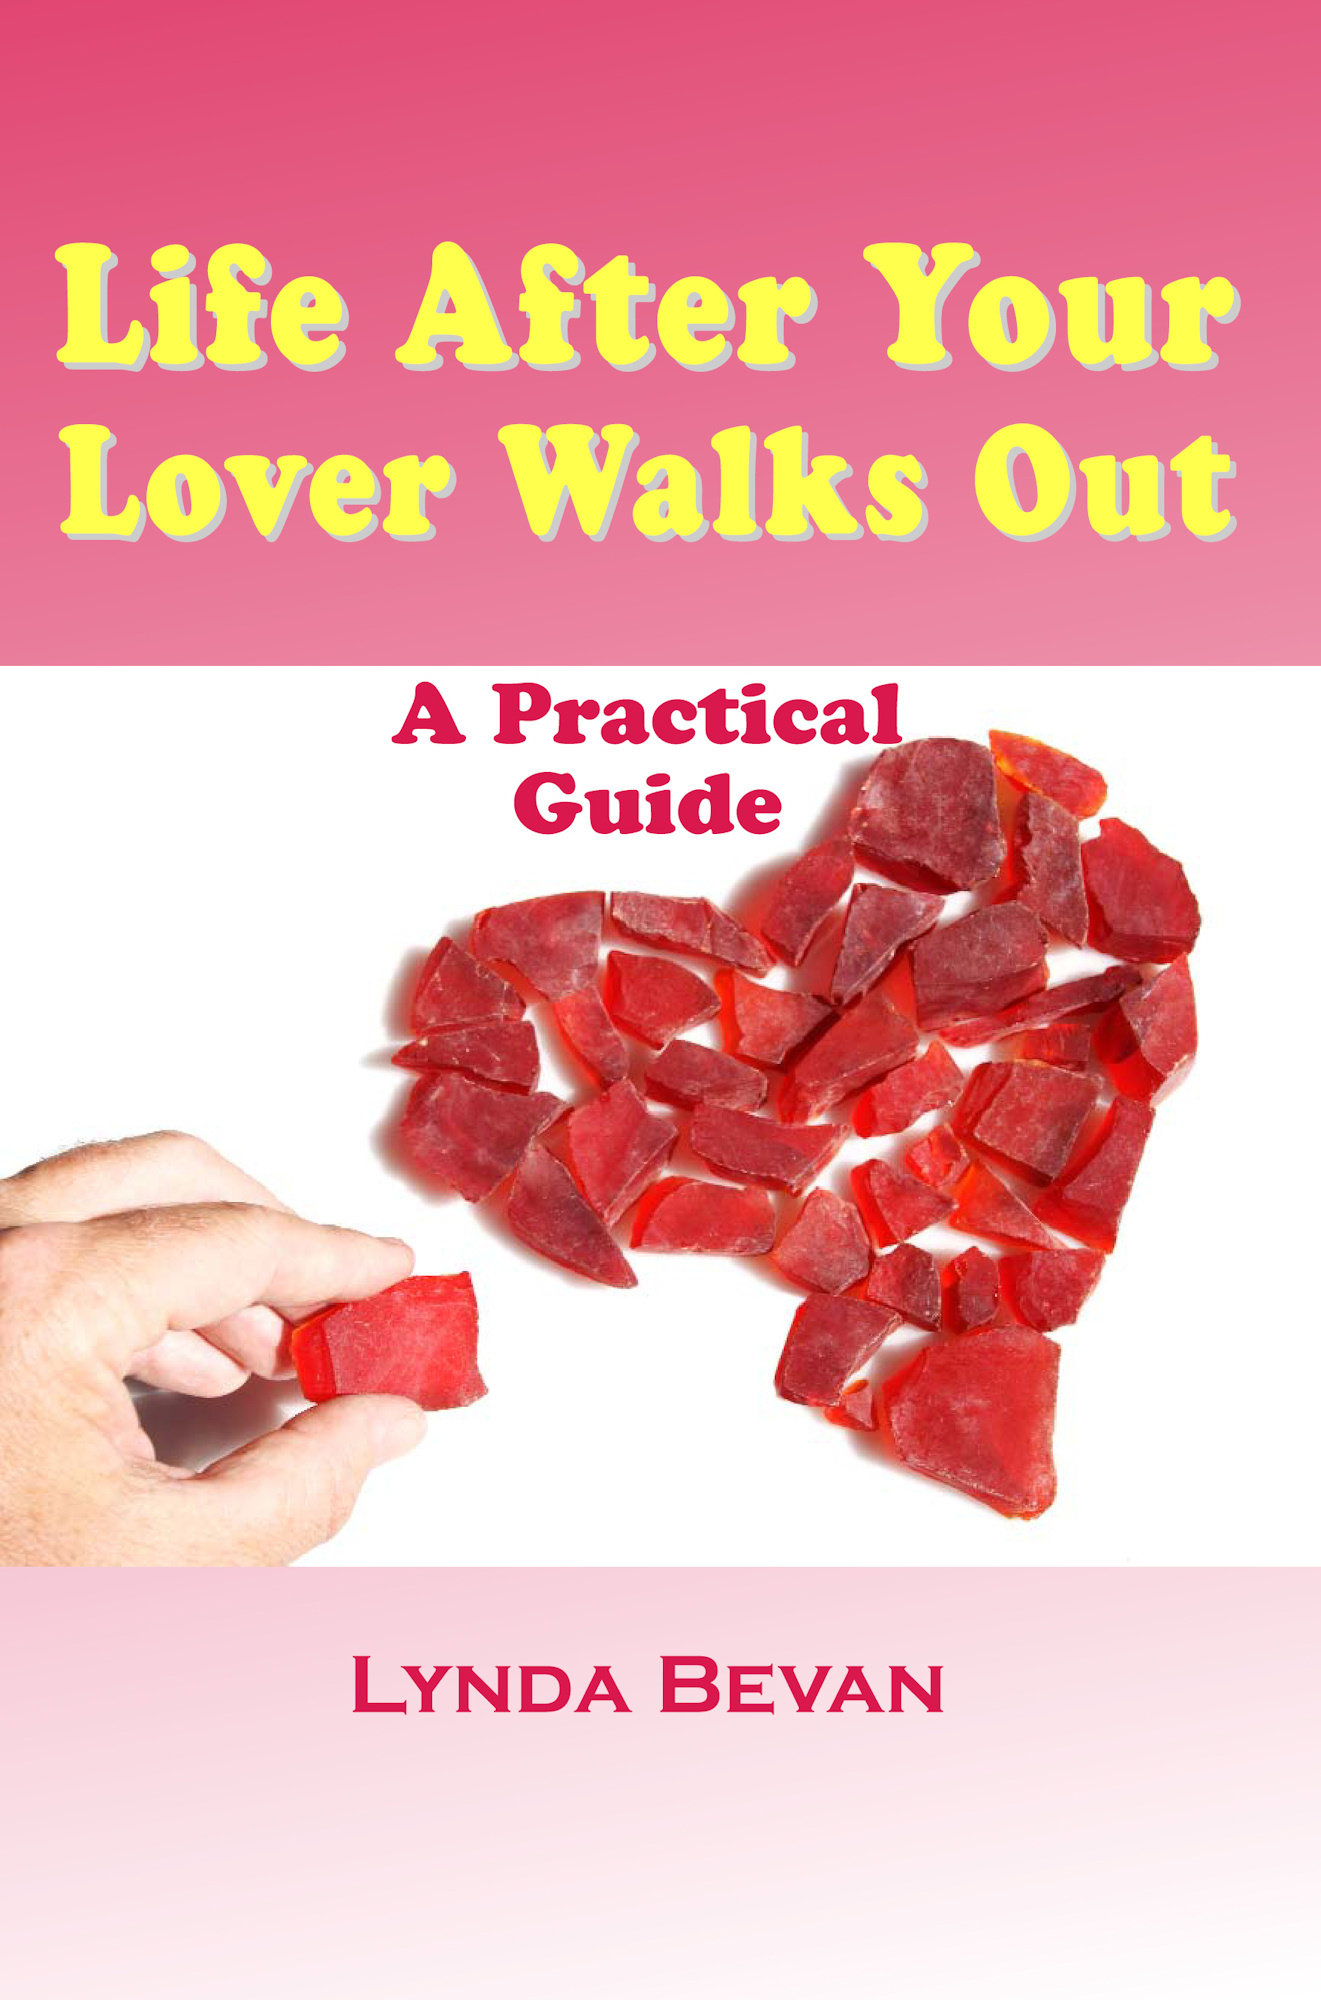 Life After Your Lover Walks Out: A Practical Guide 978-1-932690-26-2